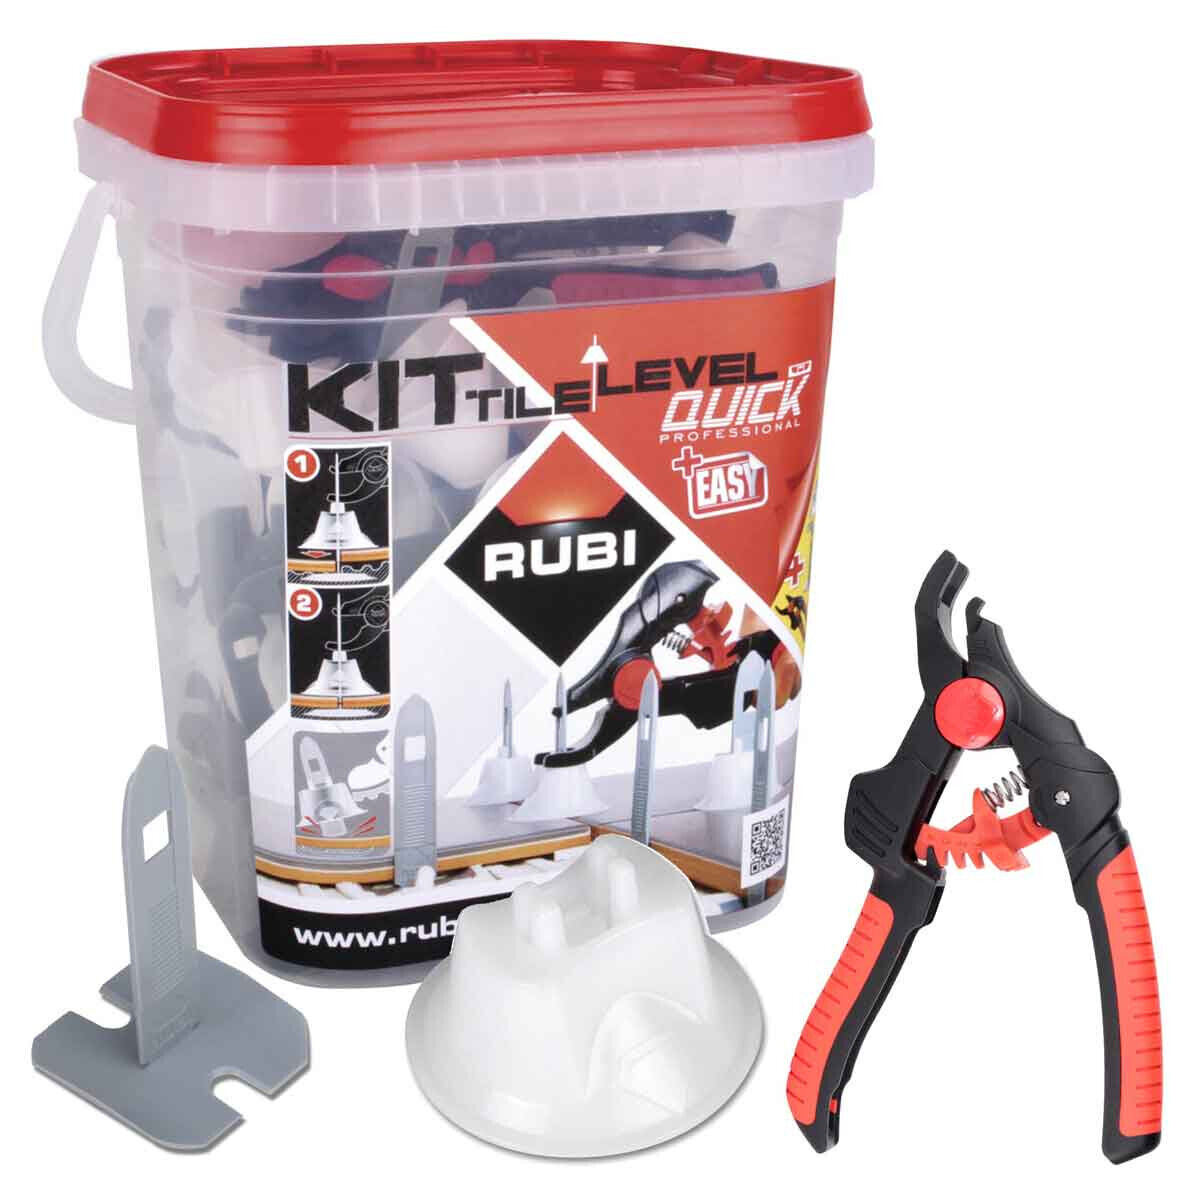 02941 Rubi Tile Level Quick Kit pliers caps and straps lippage free floor